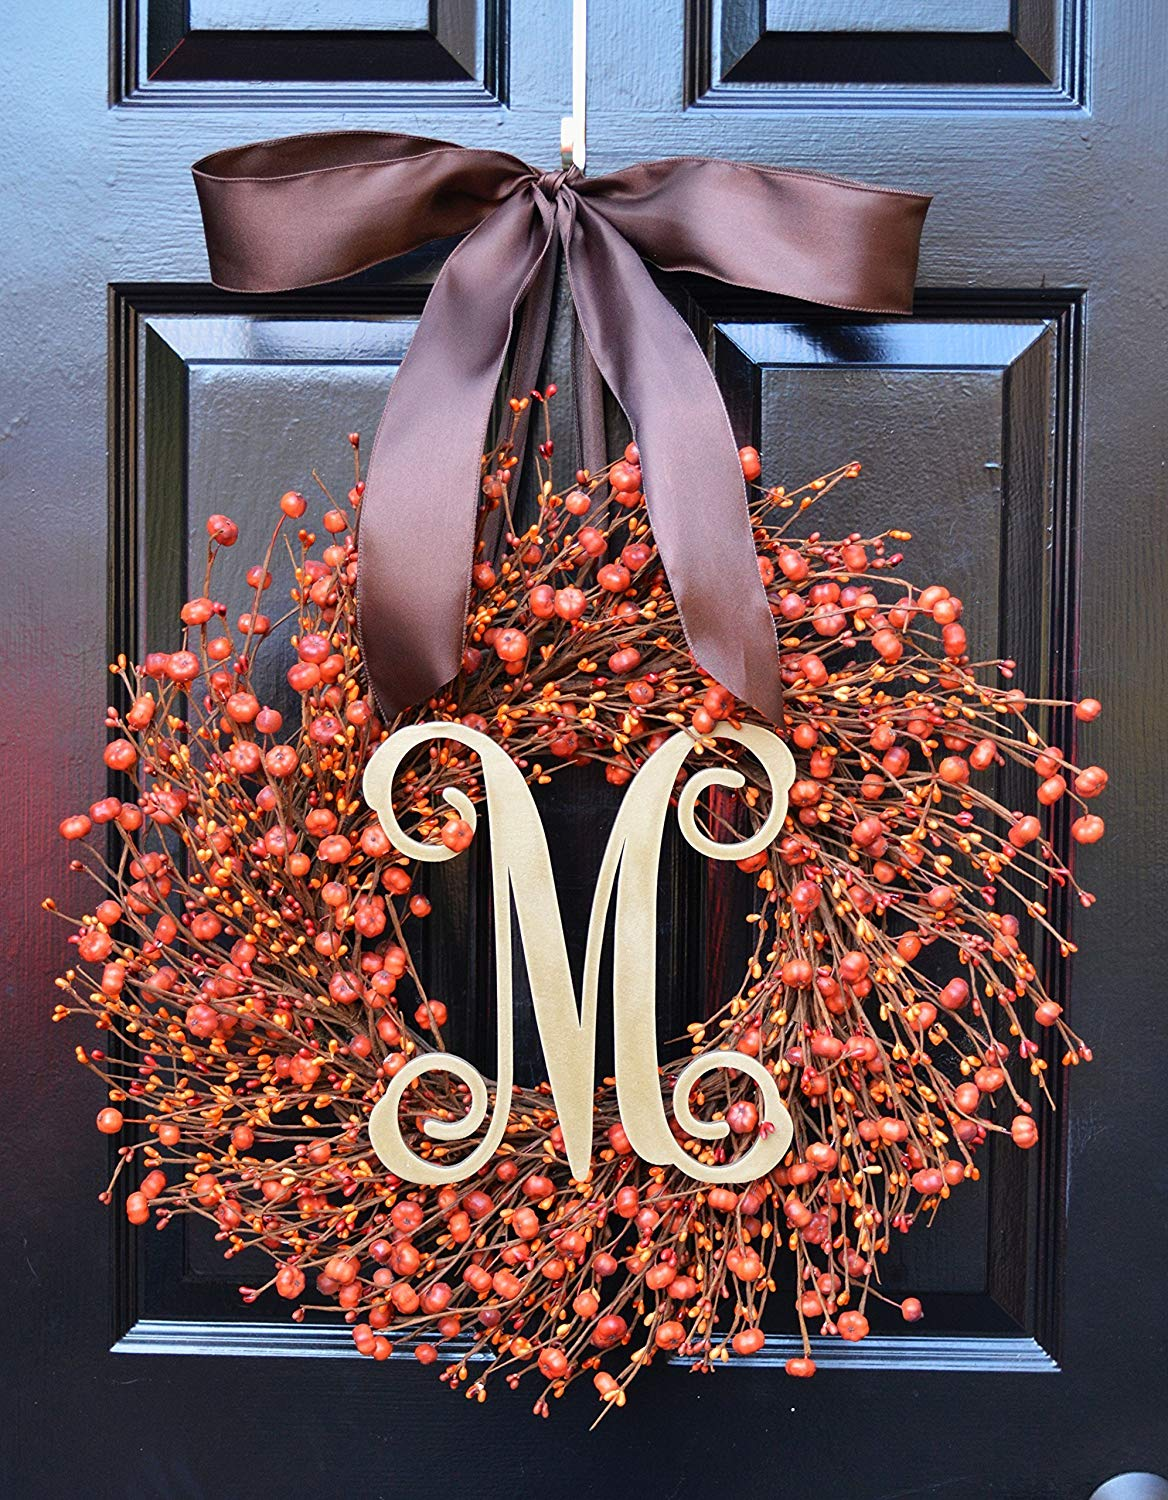 Elegant Holidays Handmade Fall Pumpkin Berry Wreath w/ Monogram & Bow, Decorative Front Door to Welcome Guests-for Outdoor or Indoor Home Wall Accent Décor for Thanksgiving and Halloween- 16-24 inches